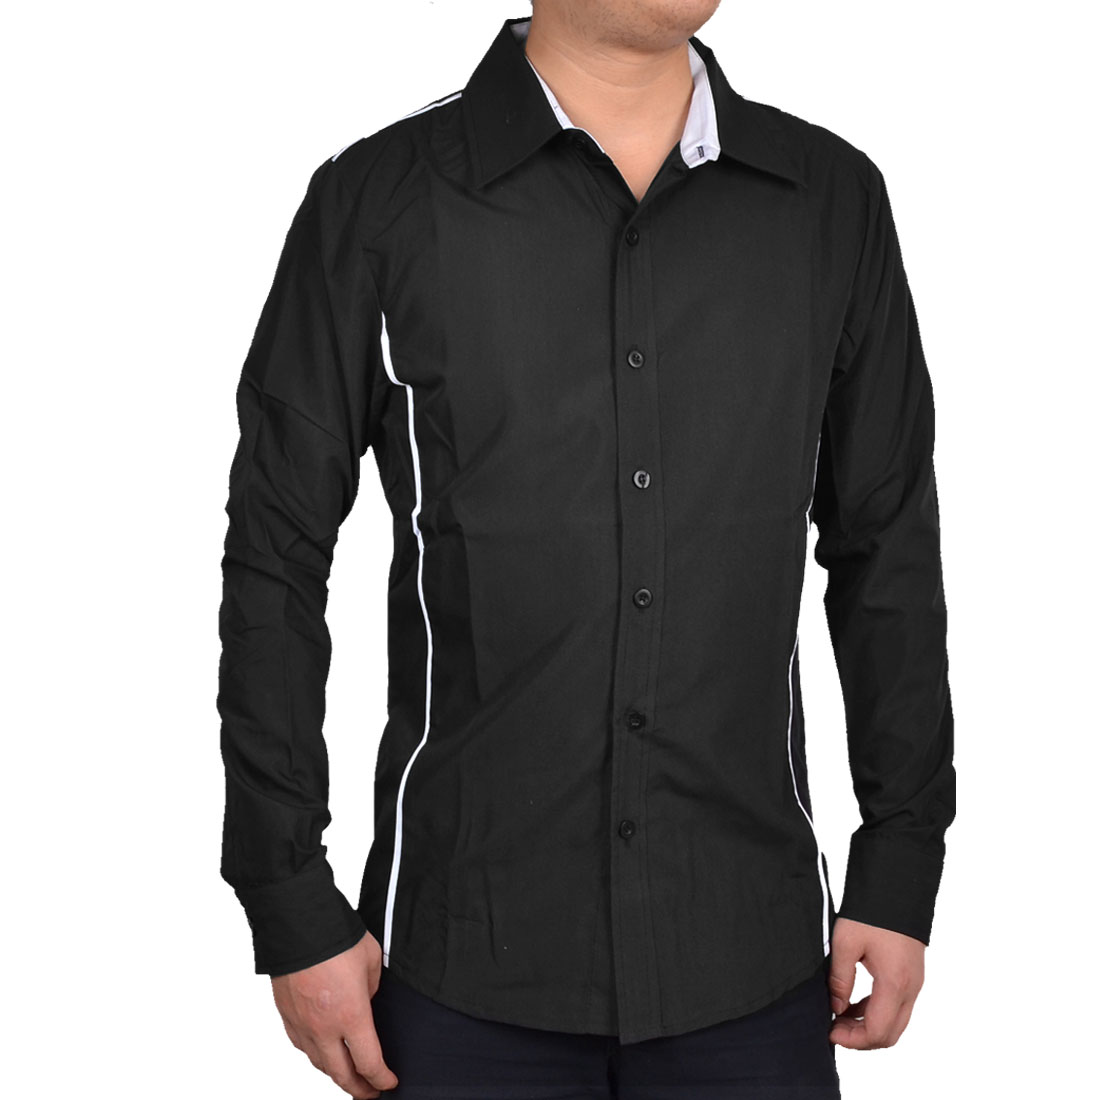 Men Black Stylish Button Closure Front Round Hem Piped Detail Casual Shirt M